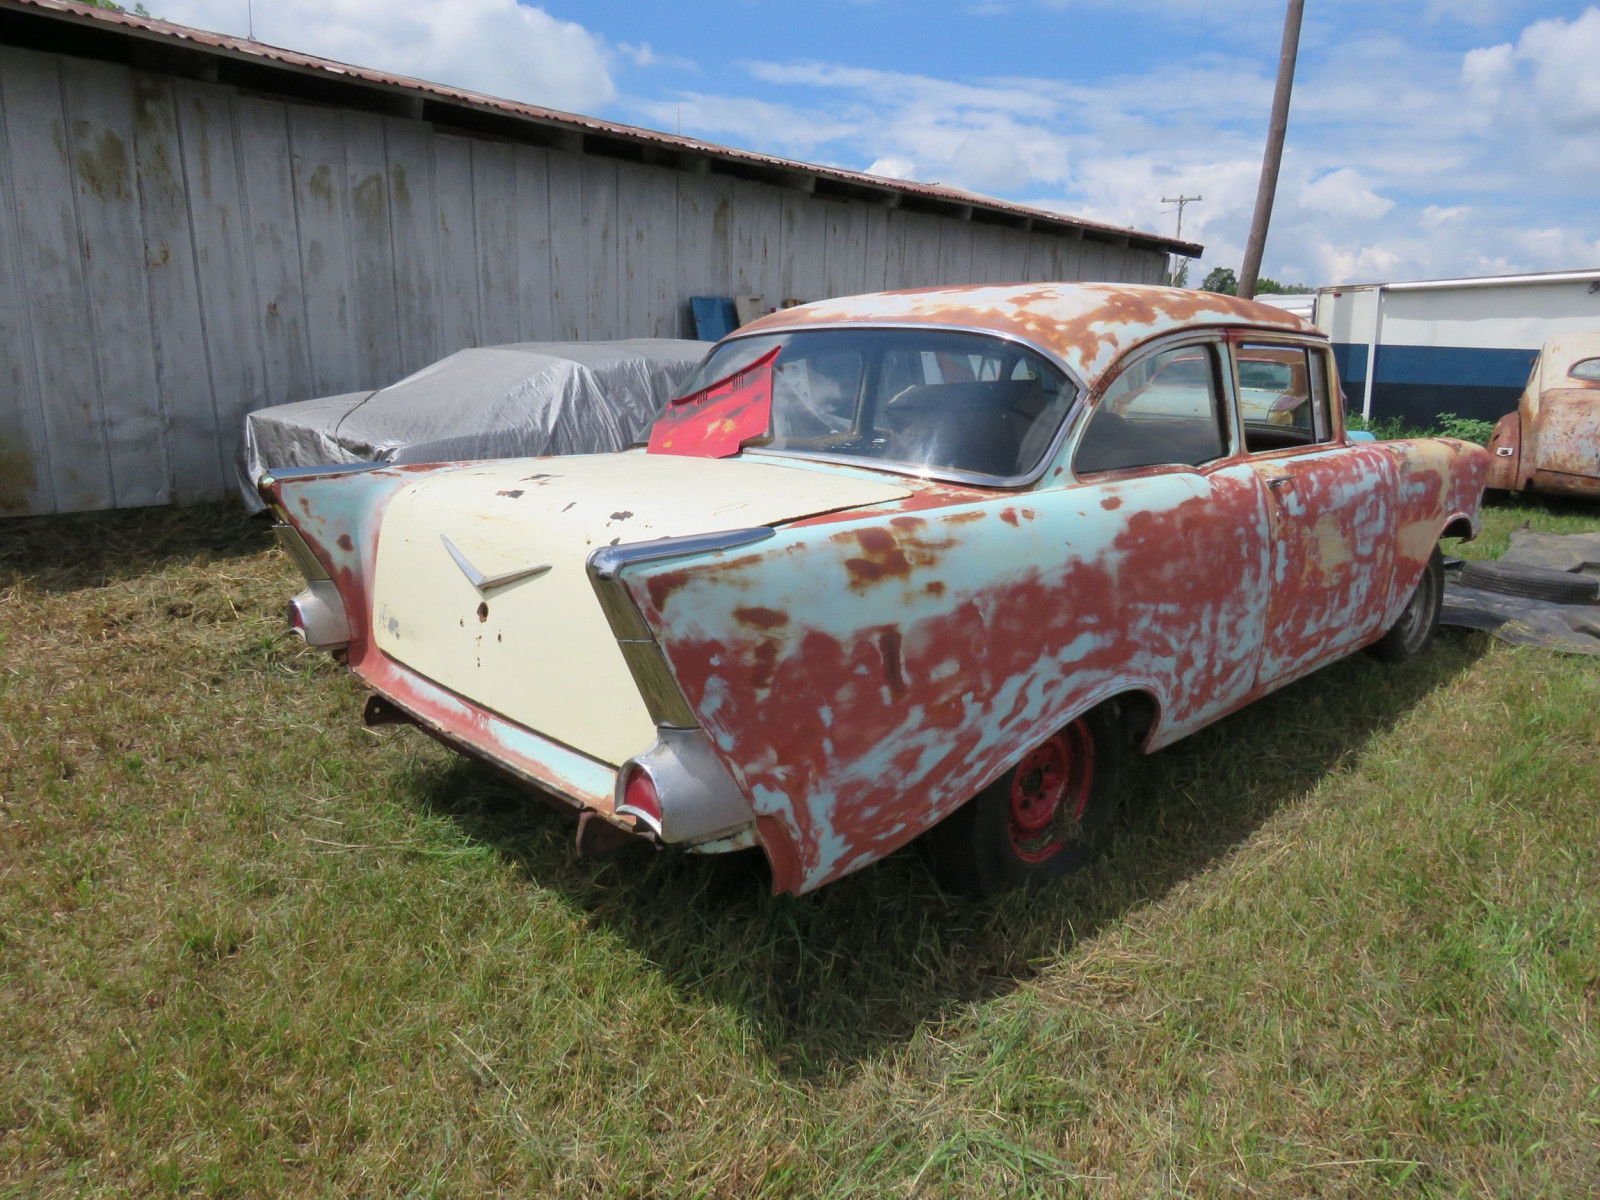 1957 Chevrolet 2dr Sedan for Rod or Restore - Image 4